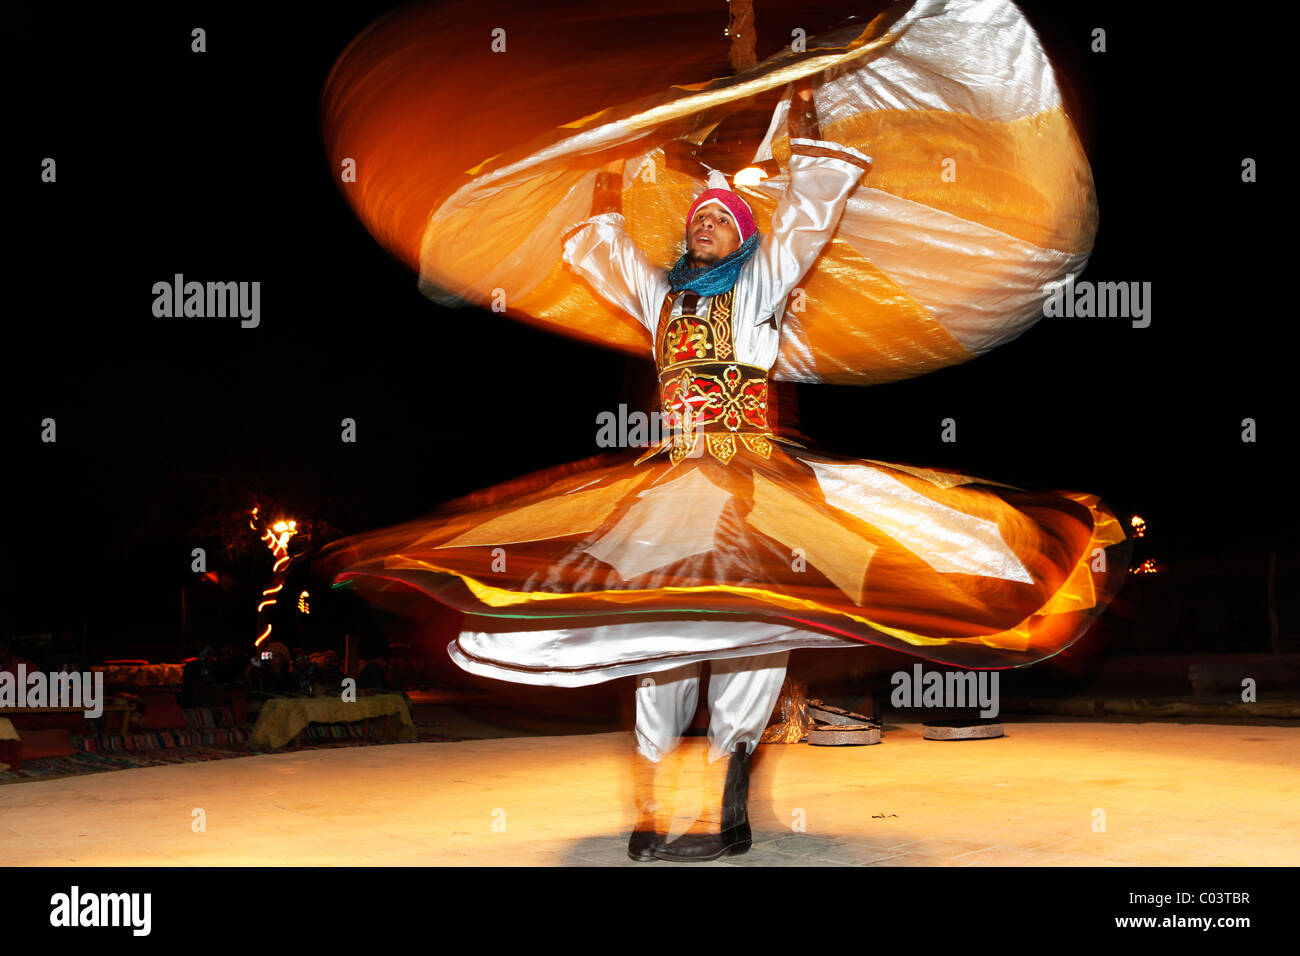 A Whirling Dervish dances to entertain tourists in Egypt. - Stock Image